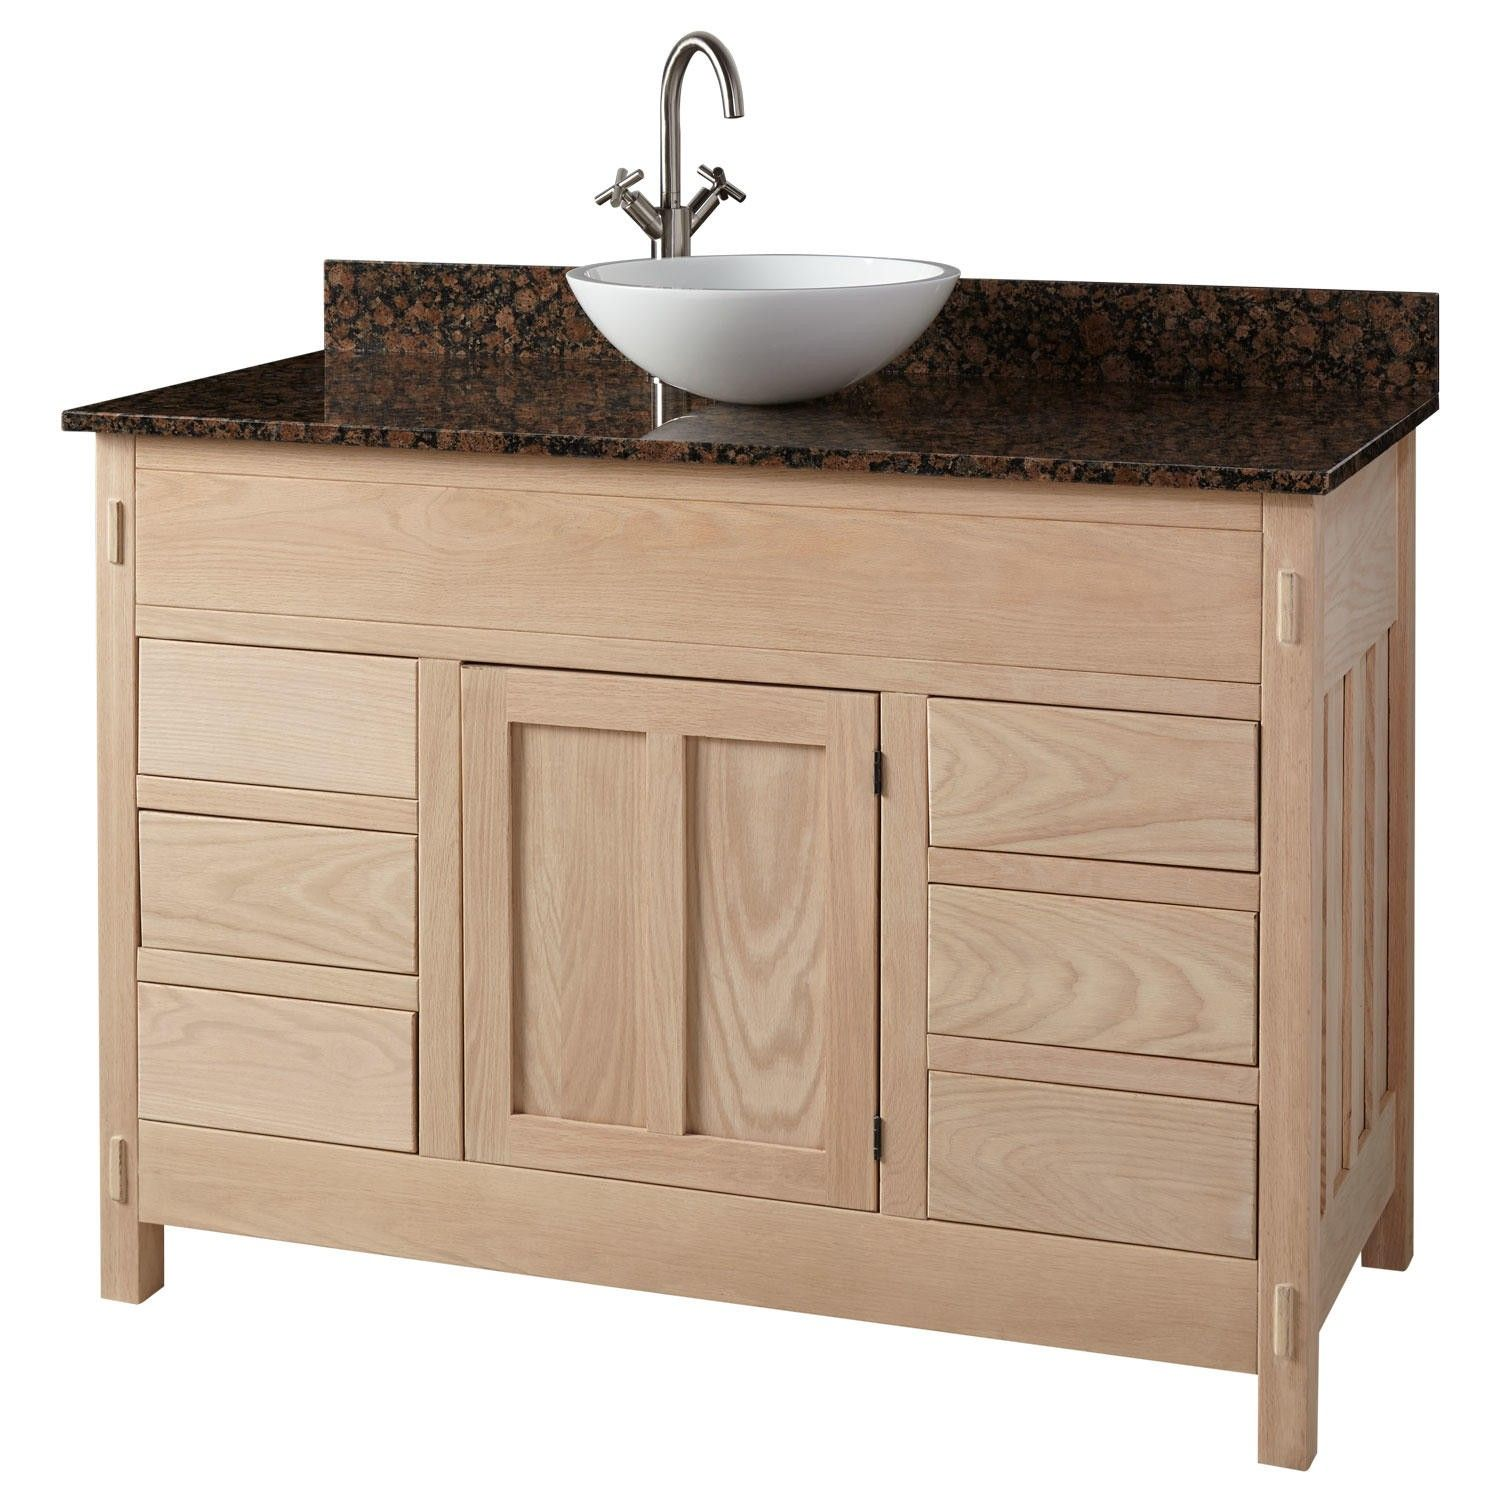 Unfinished Narrow Depth Mission Hardwood Vanity For Undermount Sink